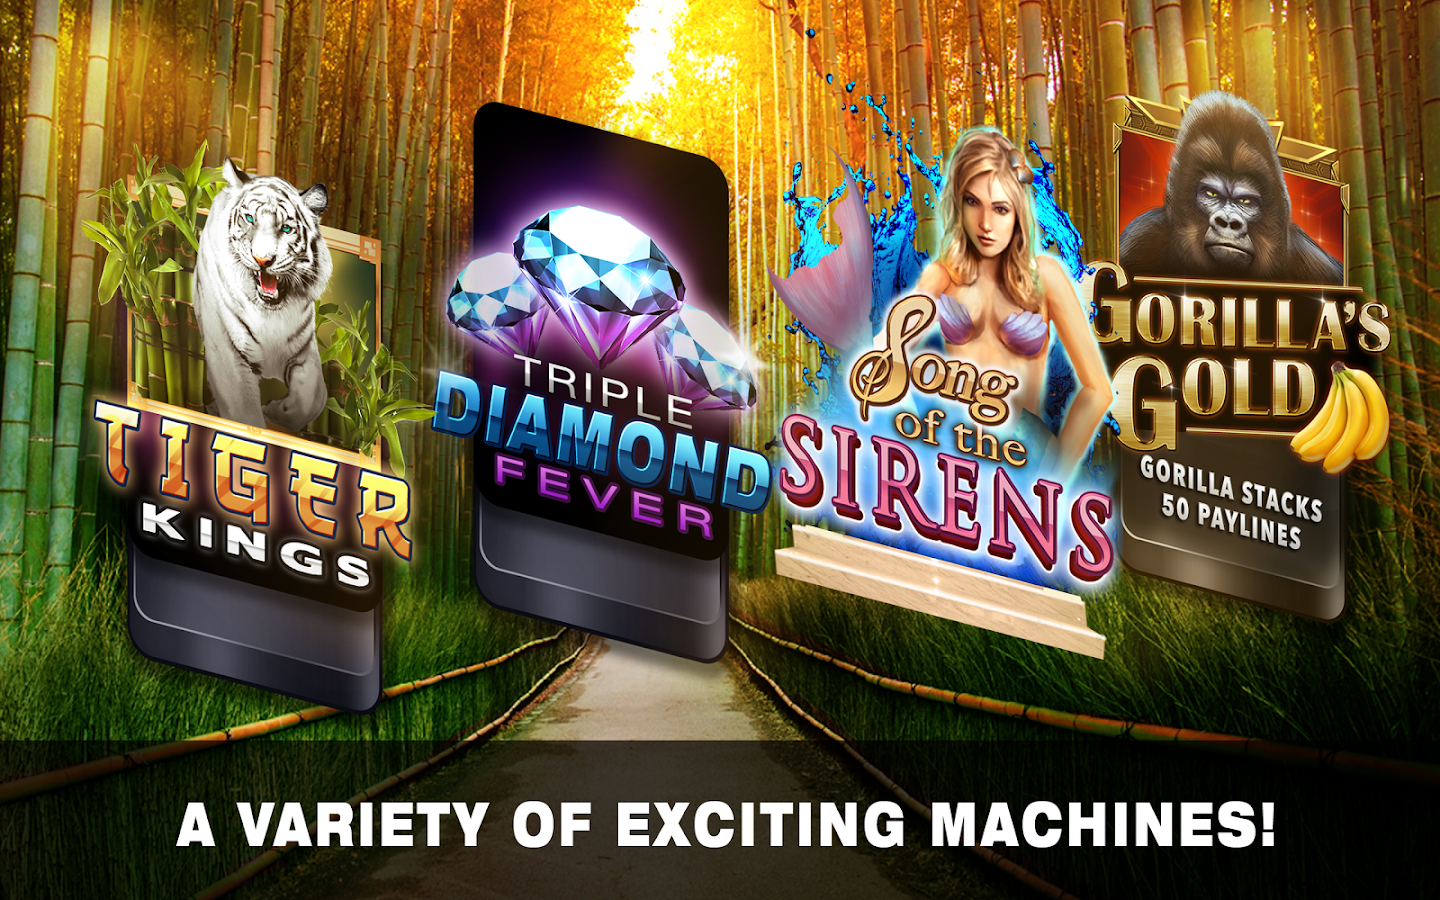 Age to play slots in florida